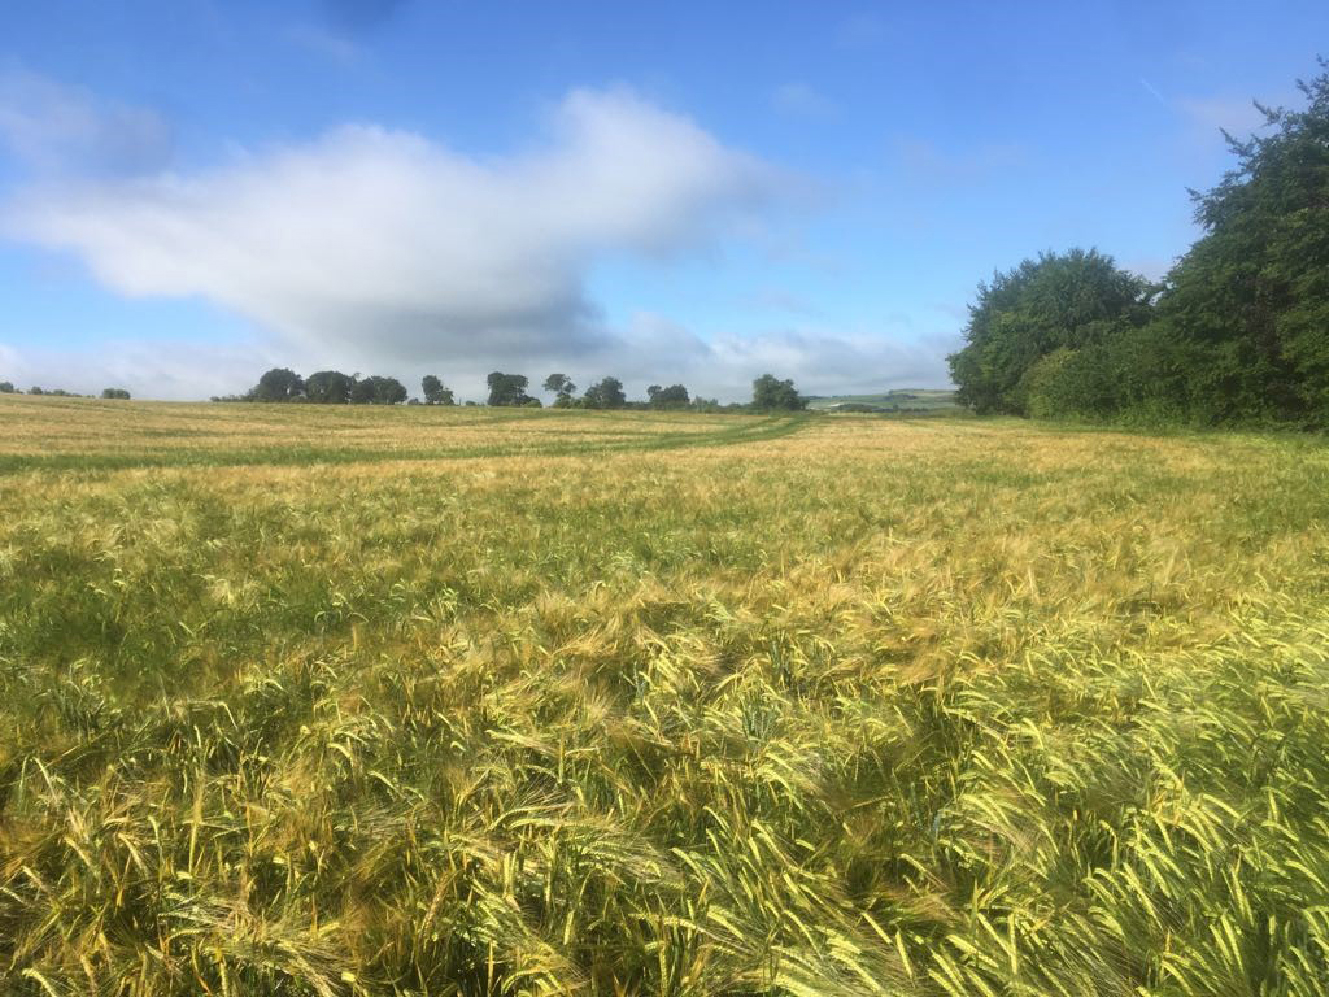 Barley ripening in a quintessentially English landscape